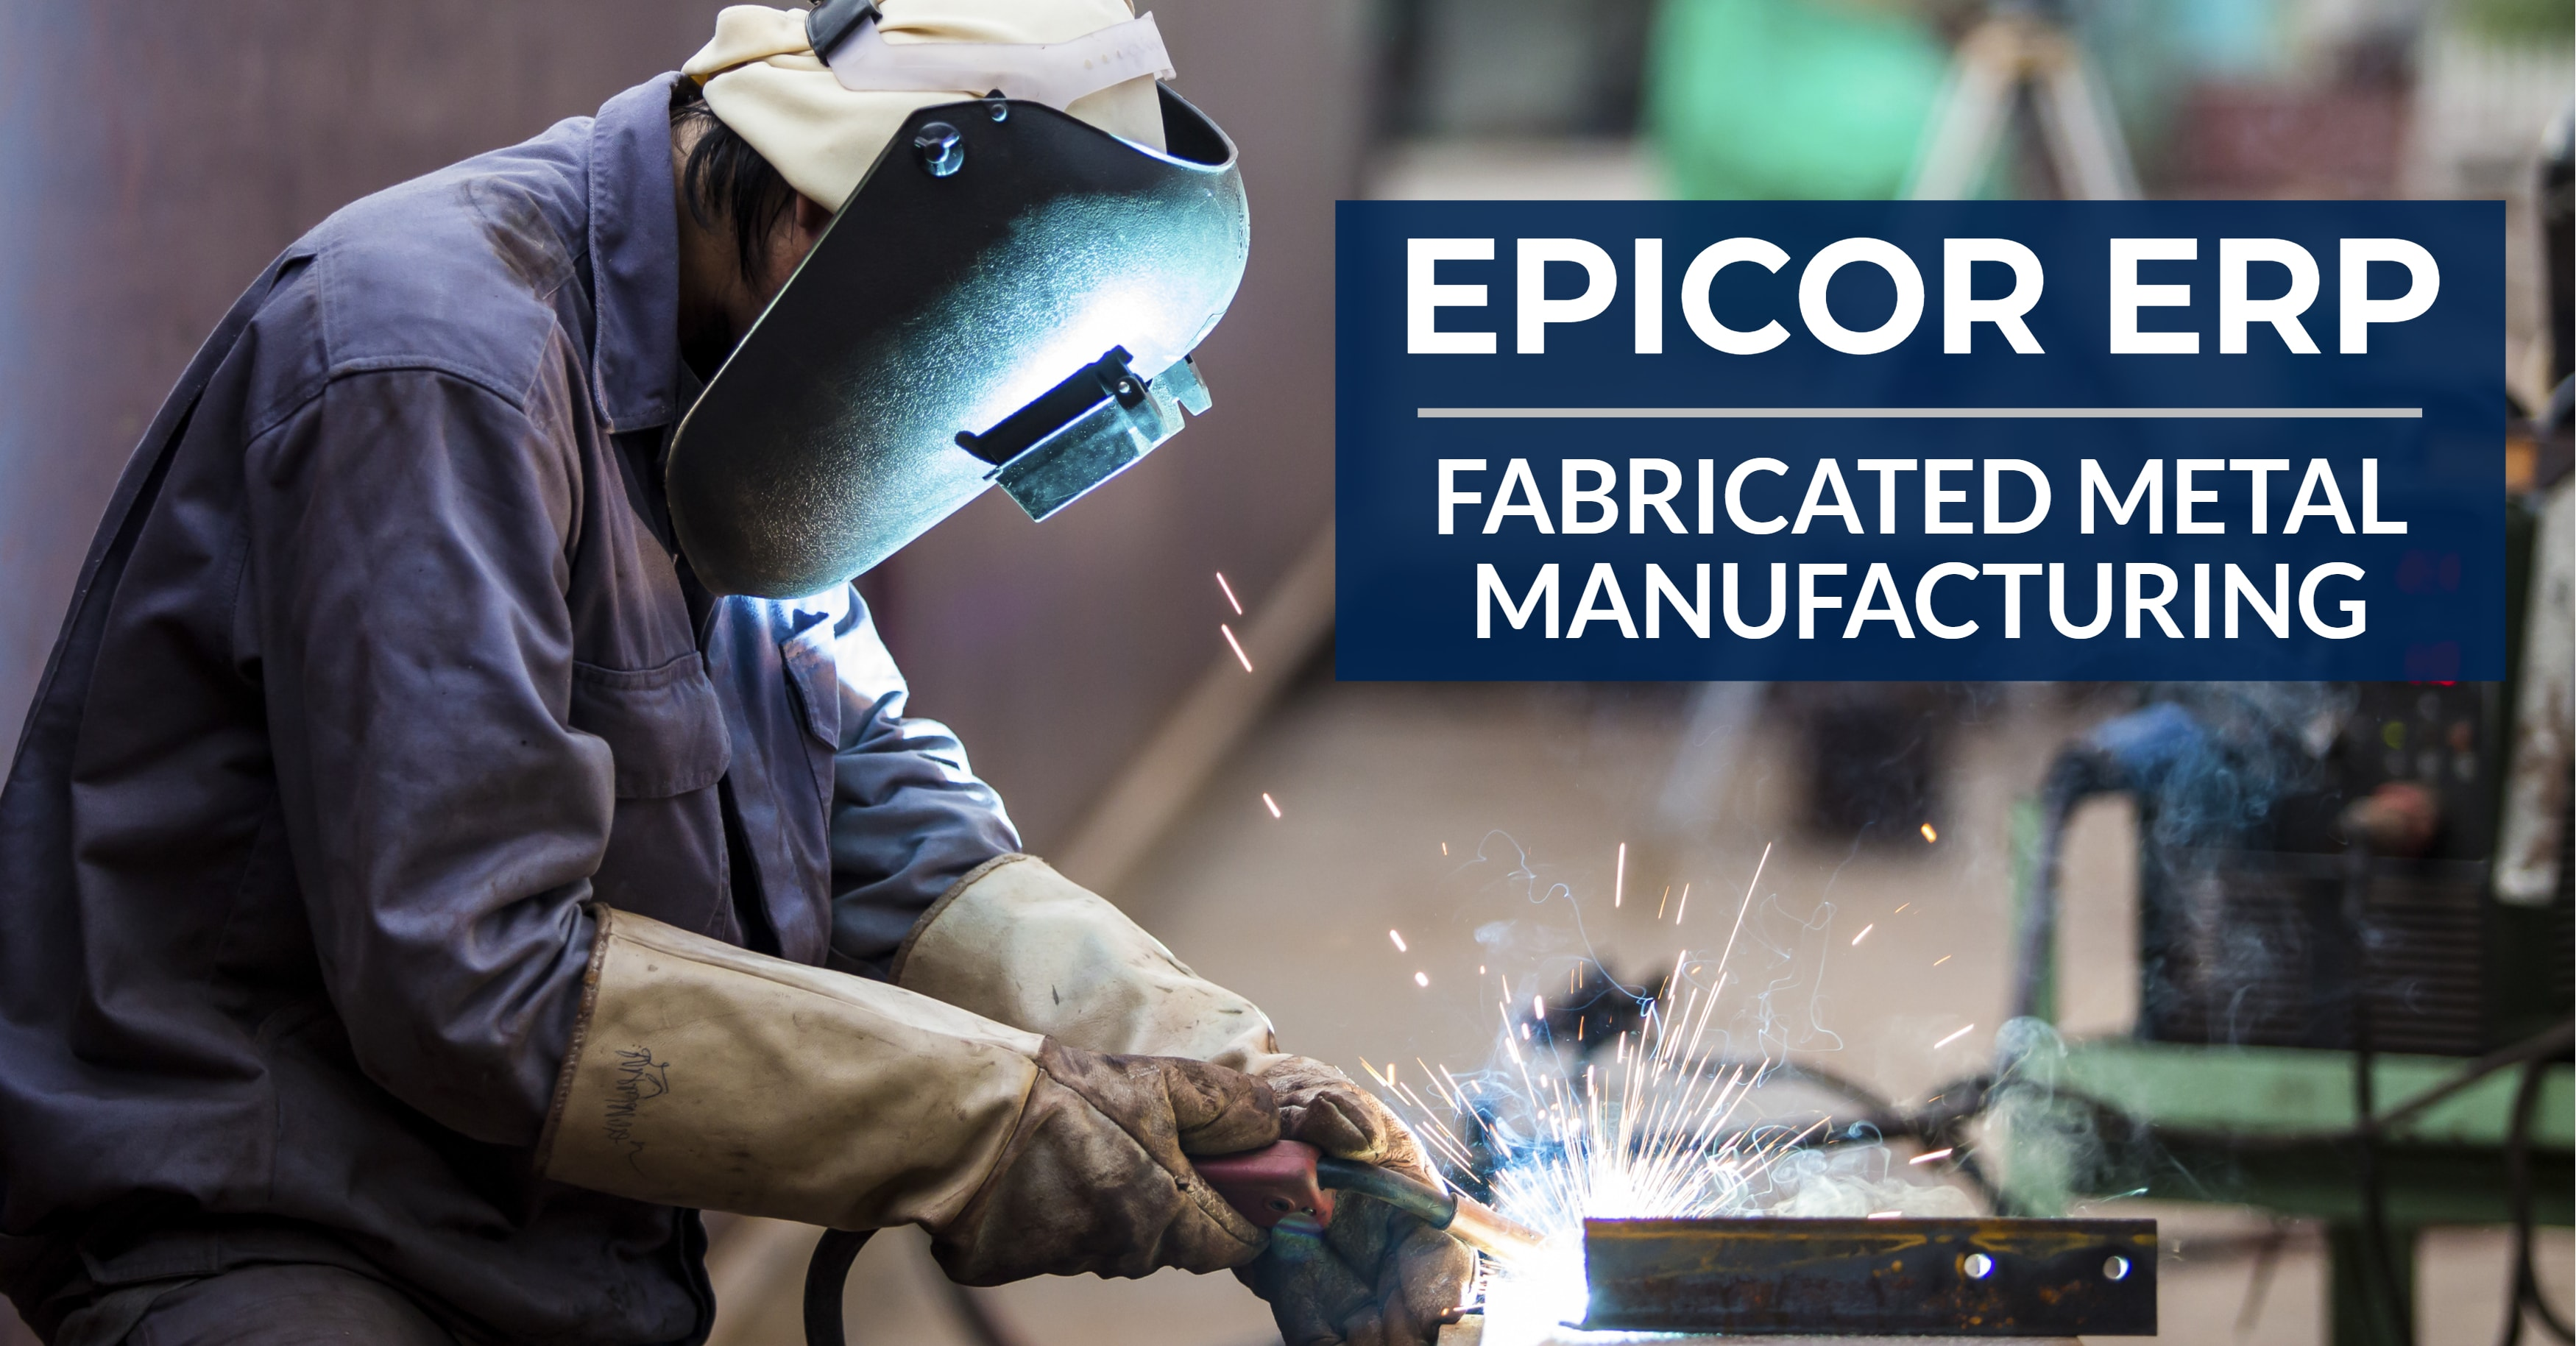 Epicor ERP Fabricated Metal Manufacturing